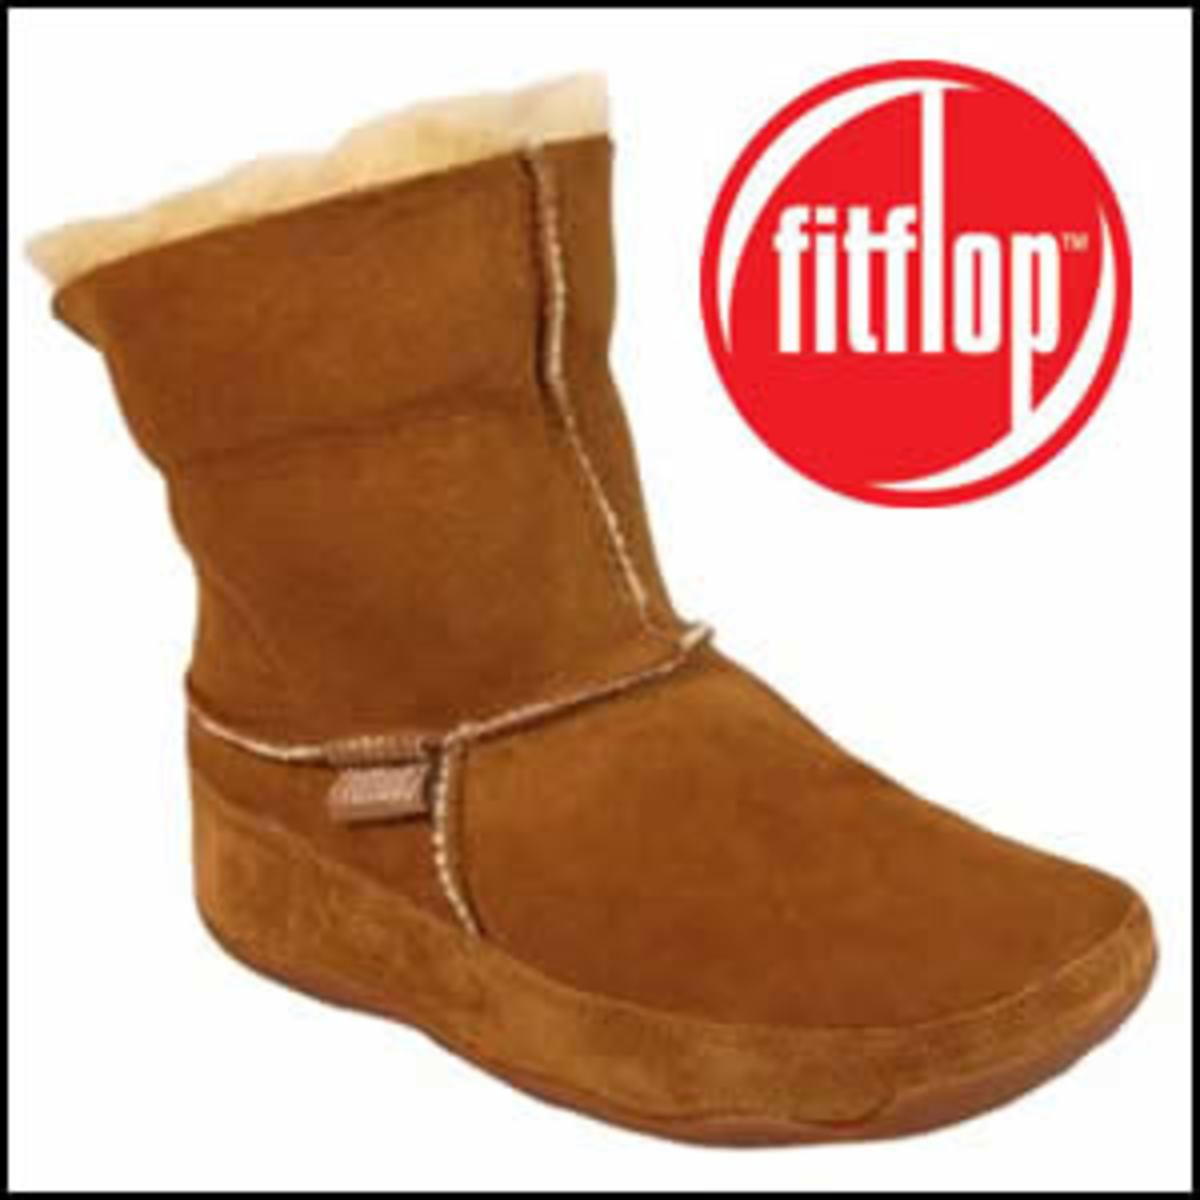 FitFlop Boots: The FitFlop Autumn Winter Collection